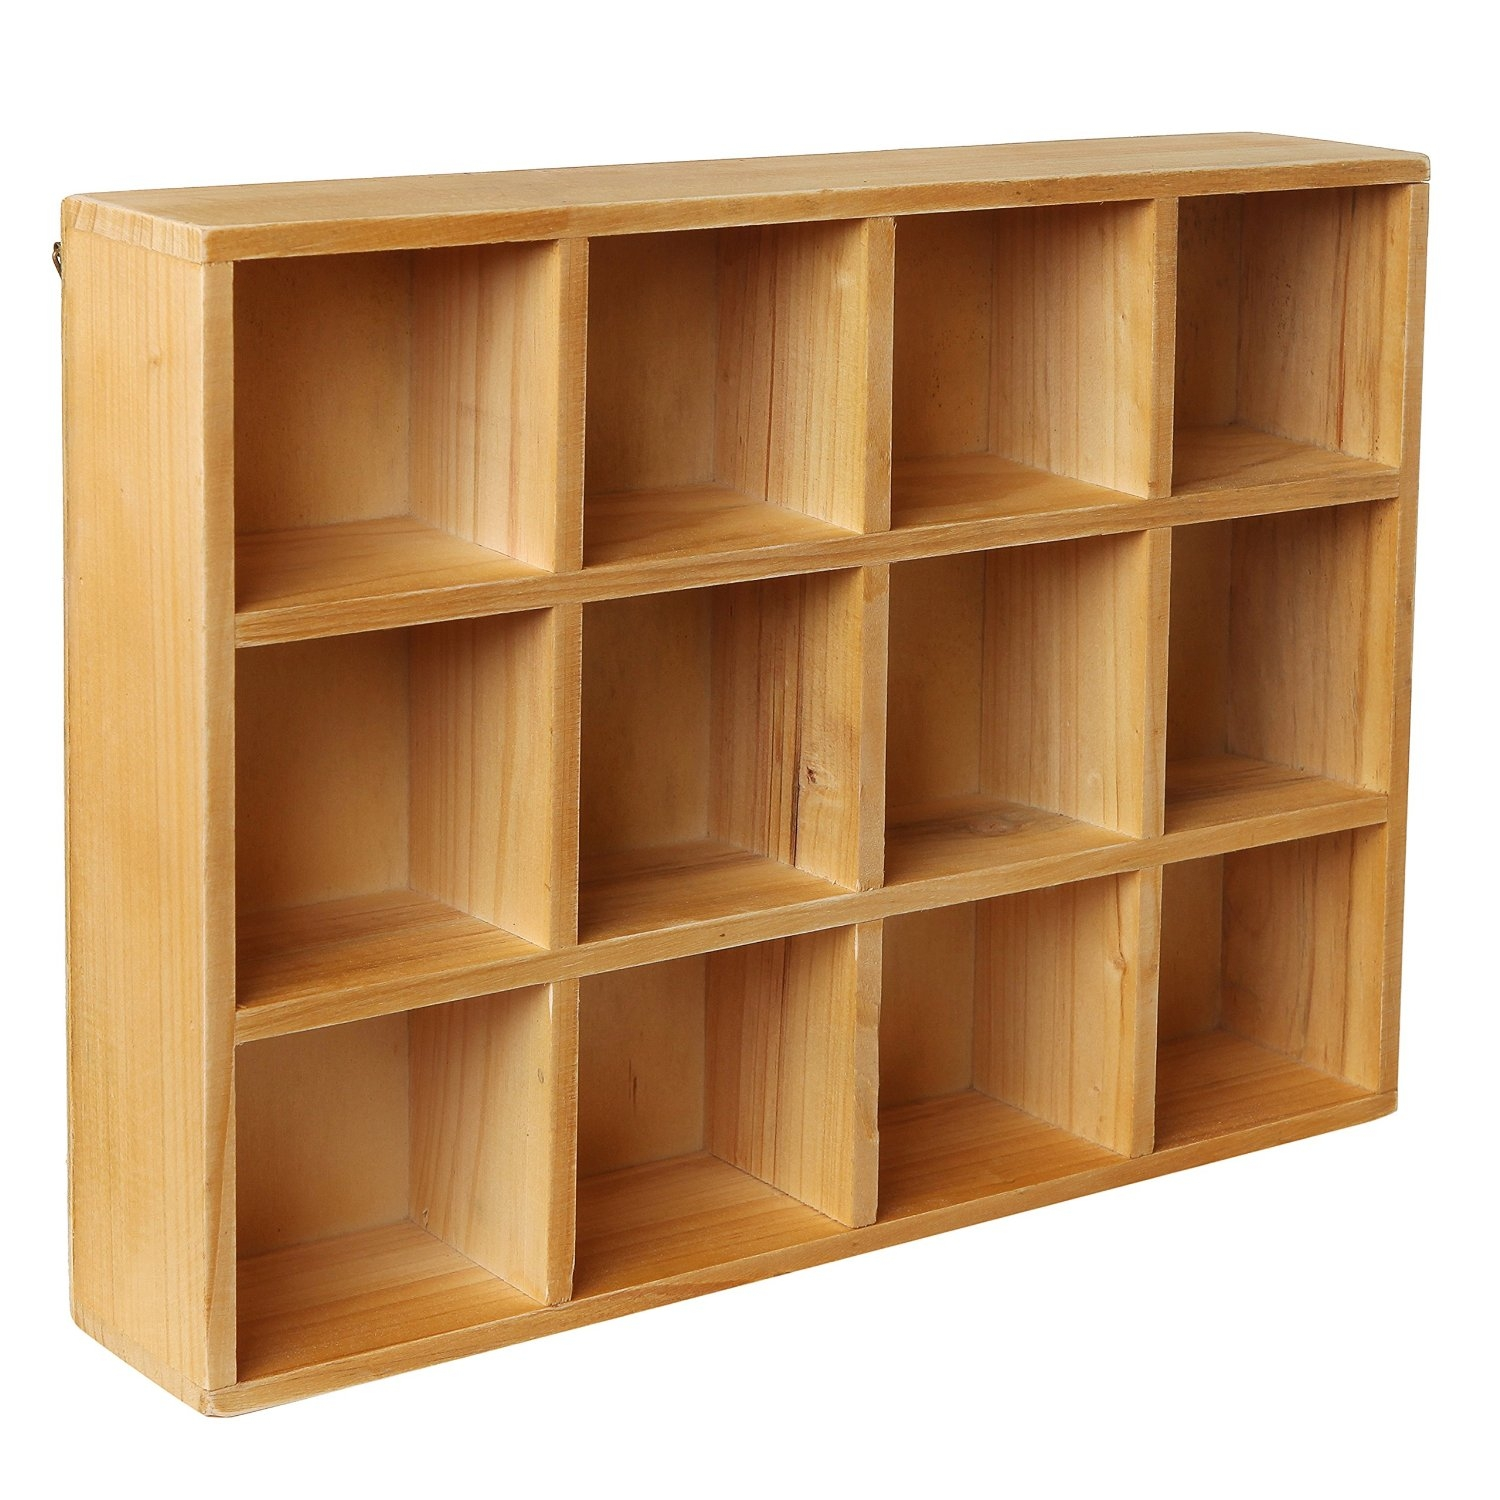 Wall Unit Wooden 15 Inspirations Of Free Standing Shelving Units Wood